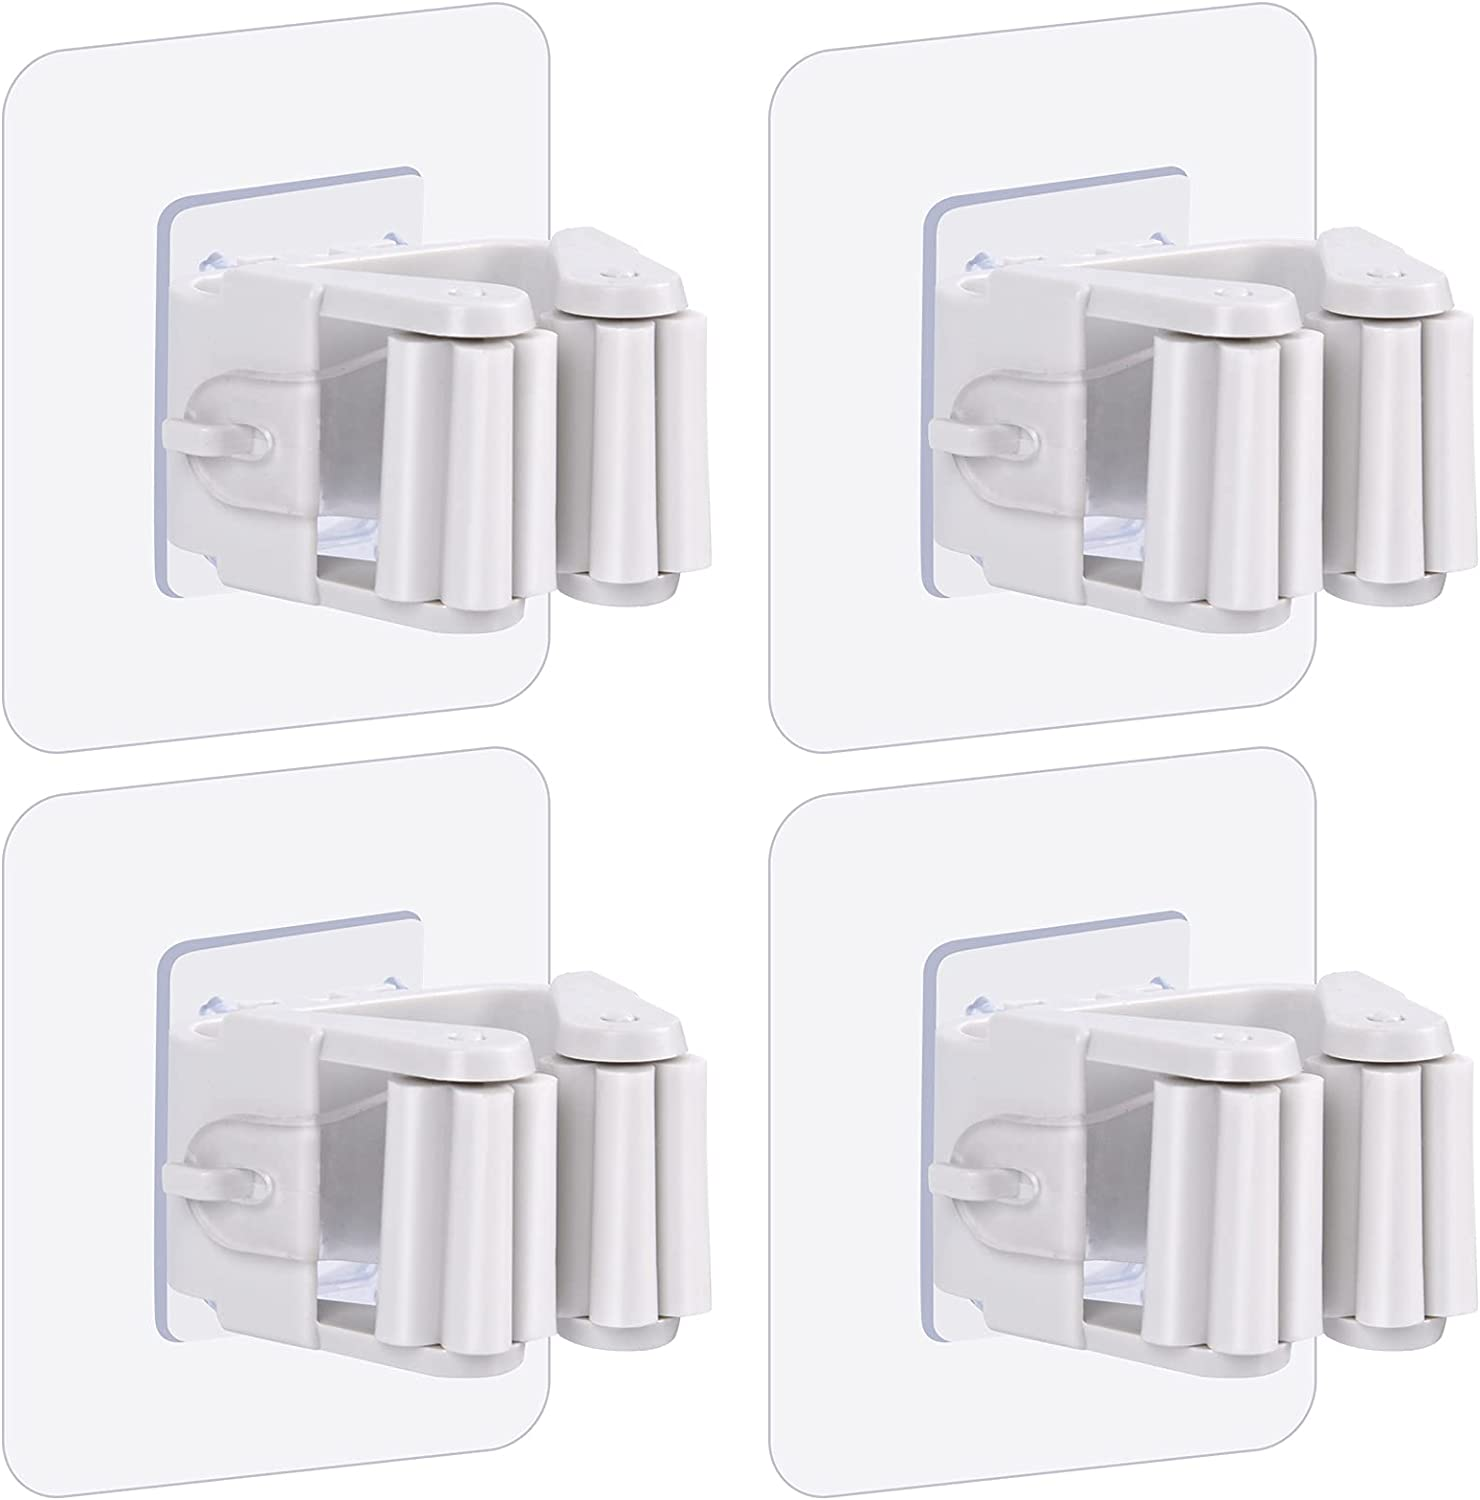 4- Pack Mop Colorado Springs Dallas Mall Mall and Broom Holder Zecval Wall Ho Mount Gripper